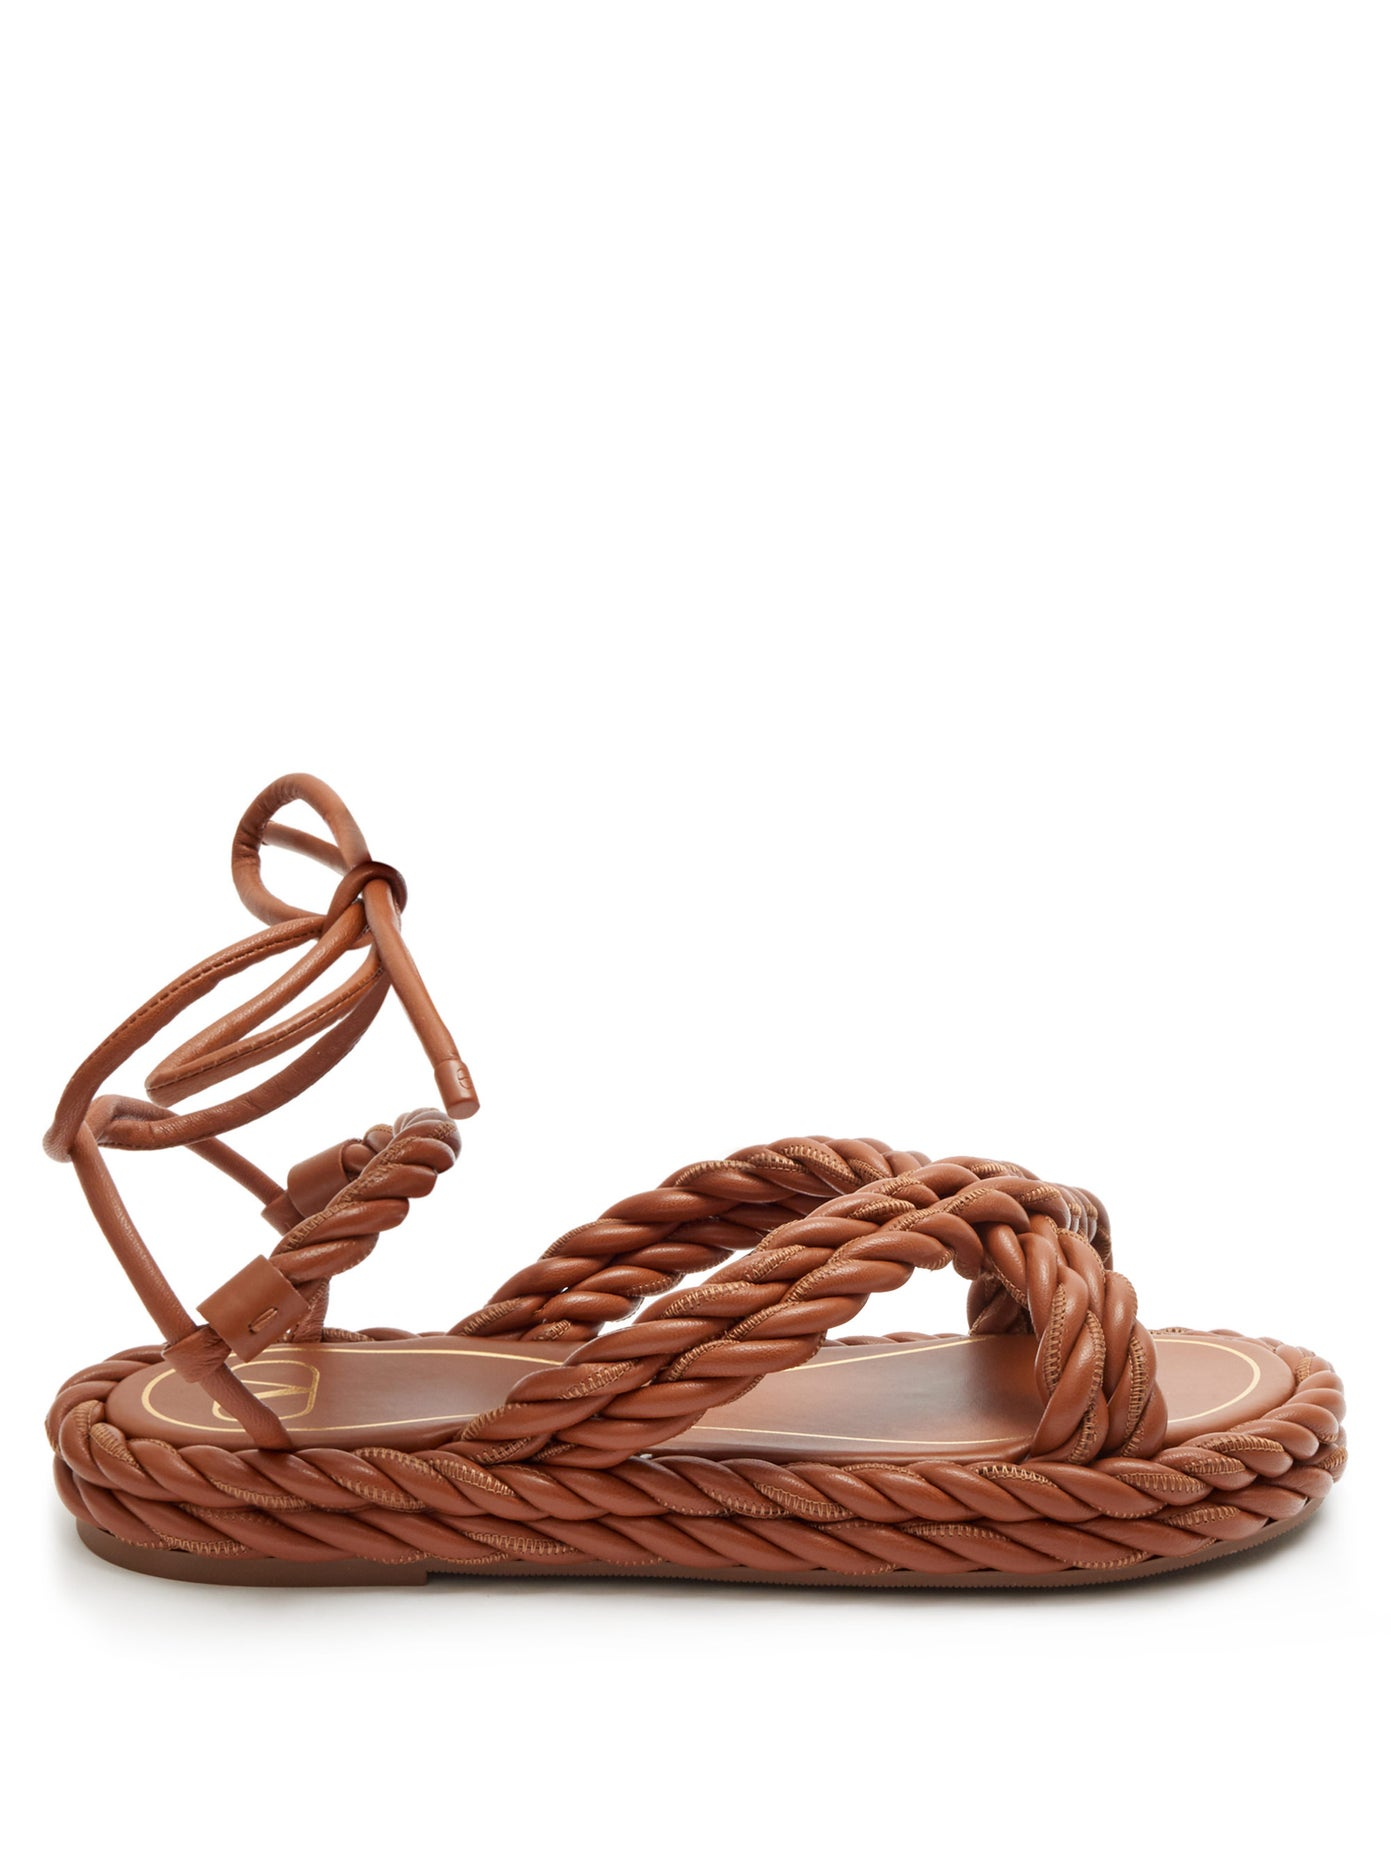 valentino-the-rope-sandals-tan-brown-leather